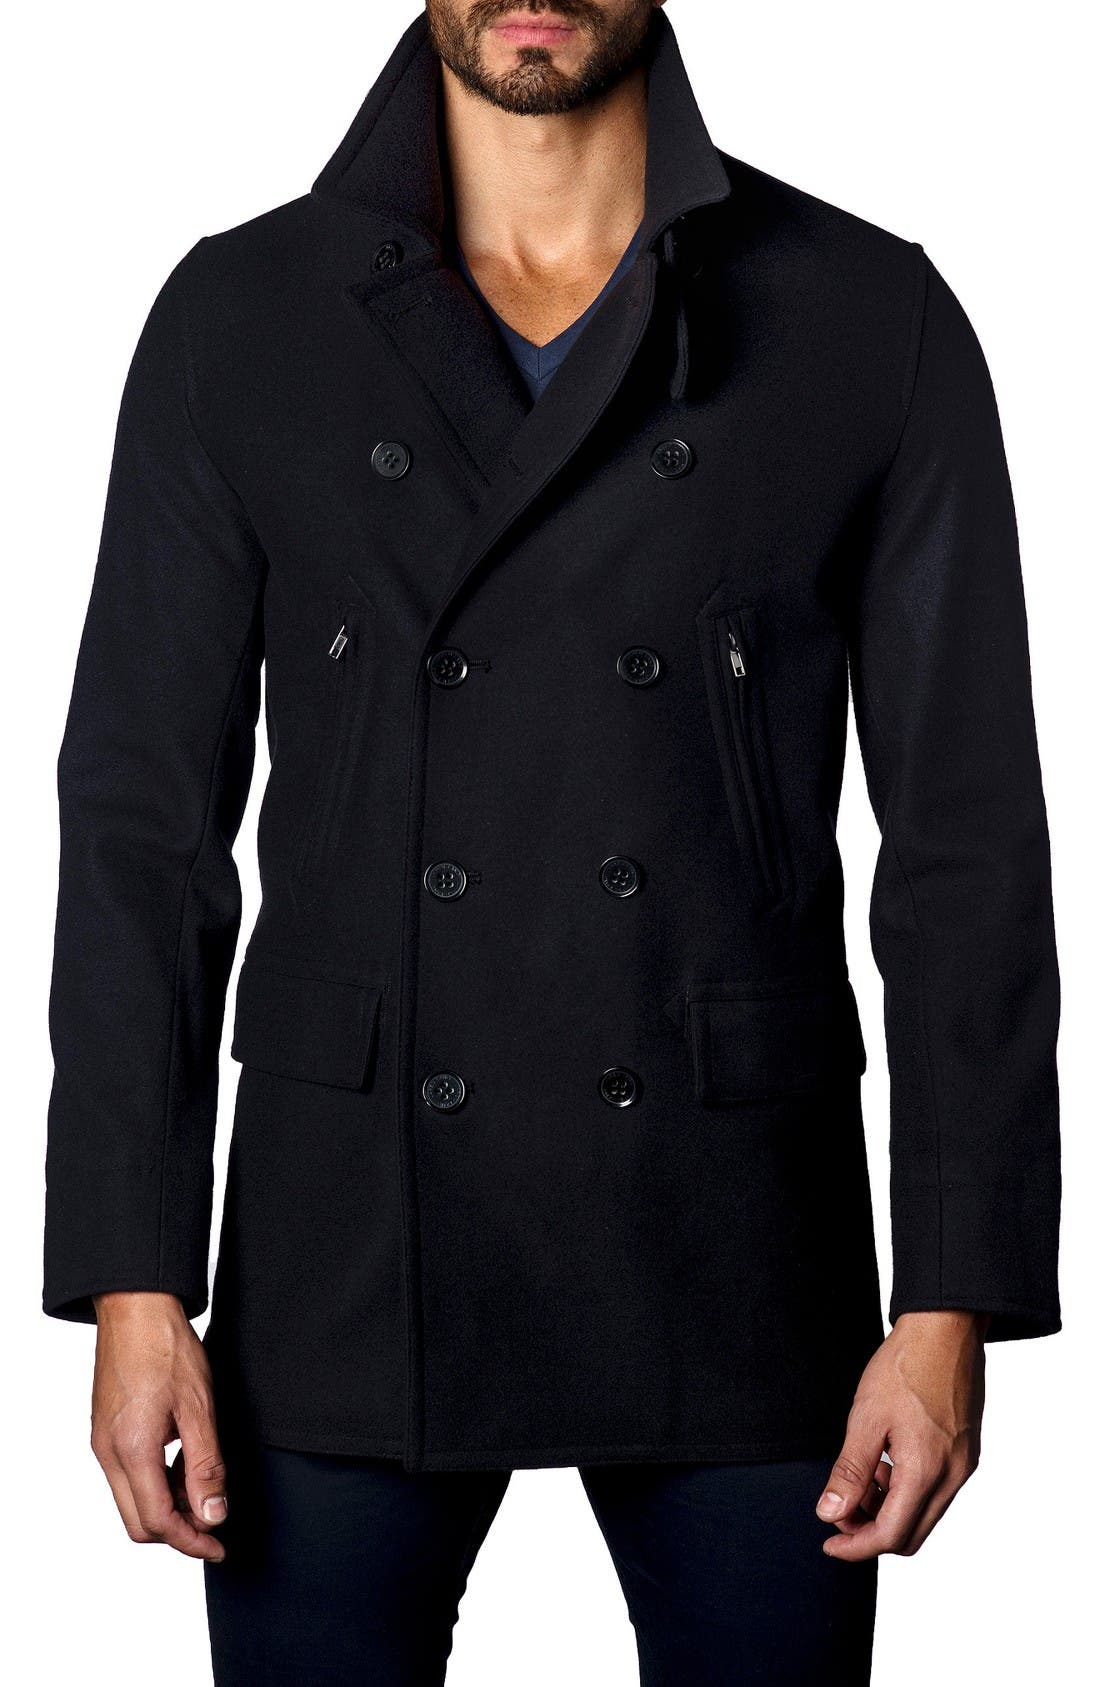 Alternate Image 1 Selected - Jared Lang Wool Blend Double Breasted Peacoat